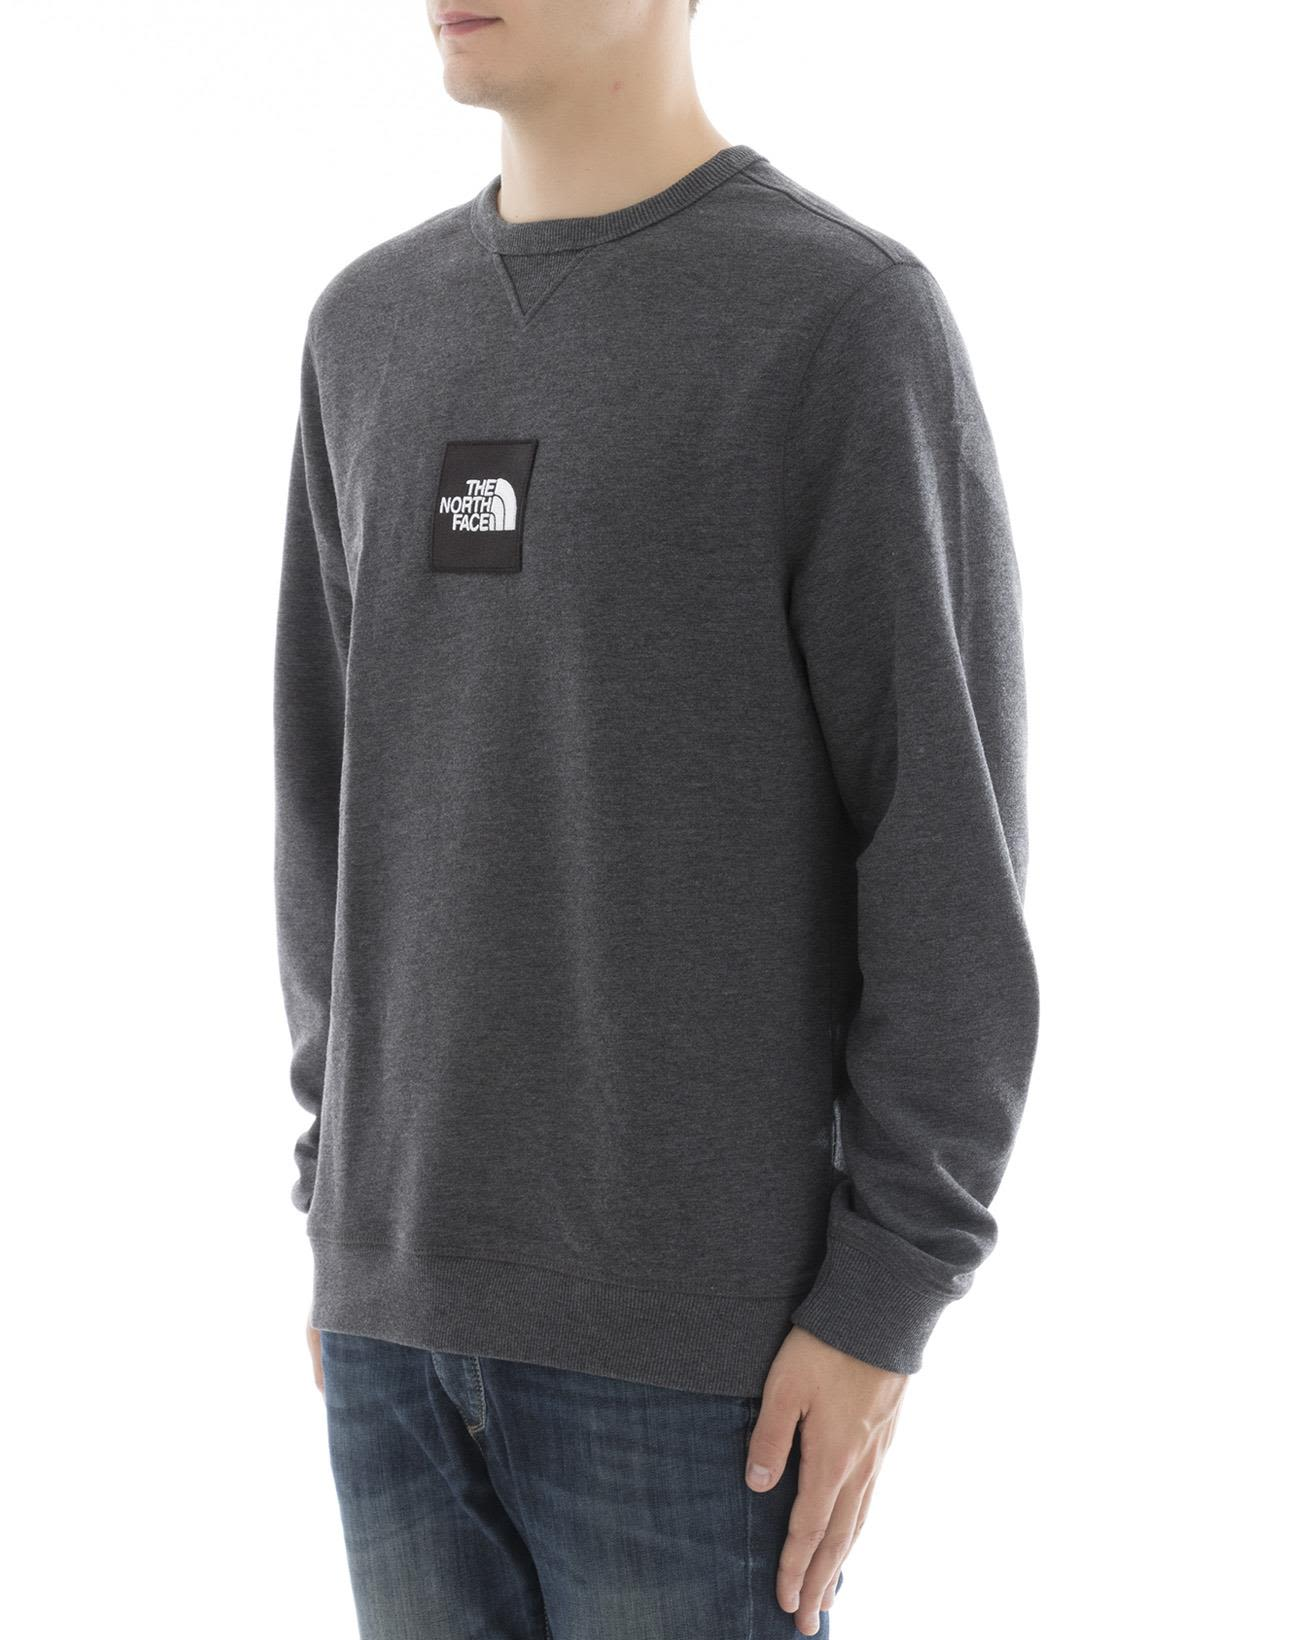 The North Face - Grey Cotton Sweater - Grey, Men's Sweaters | Italist